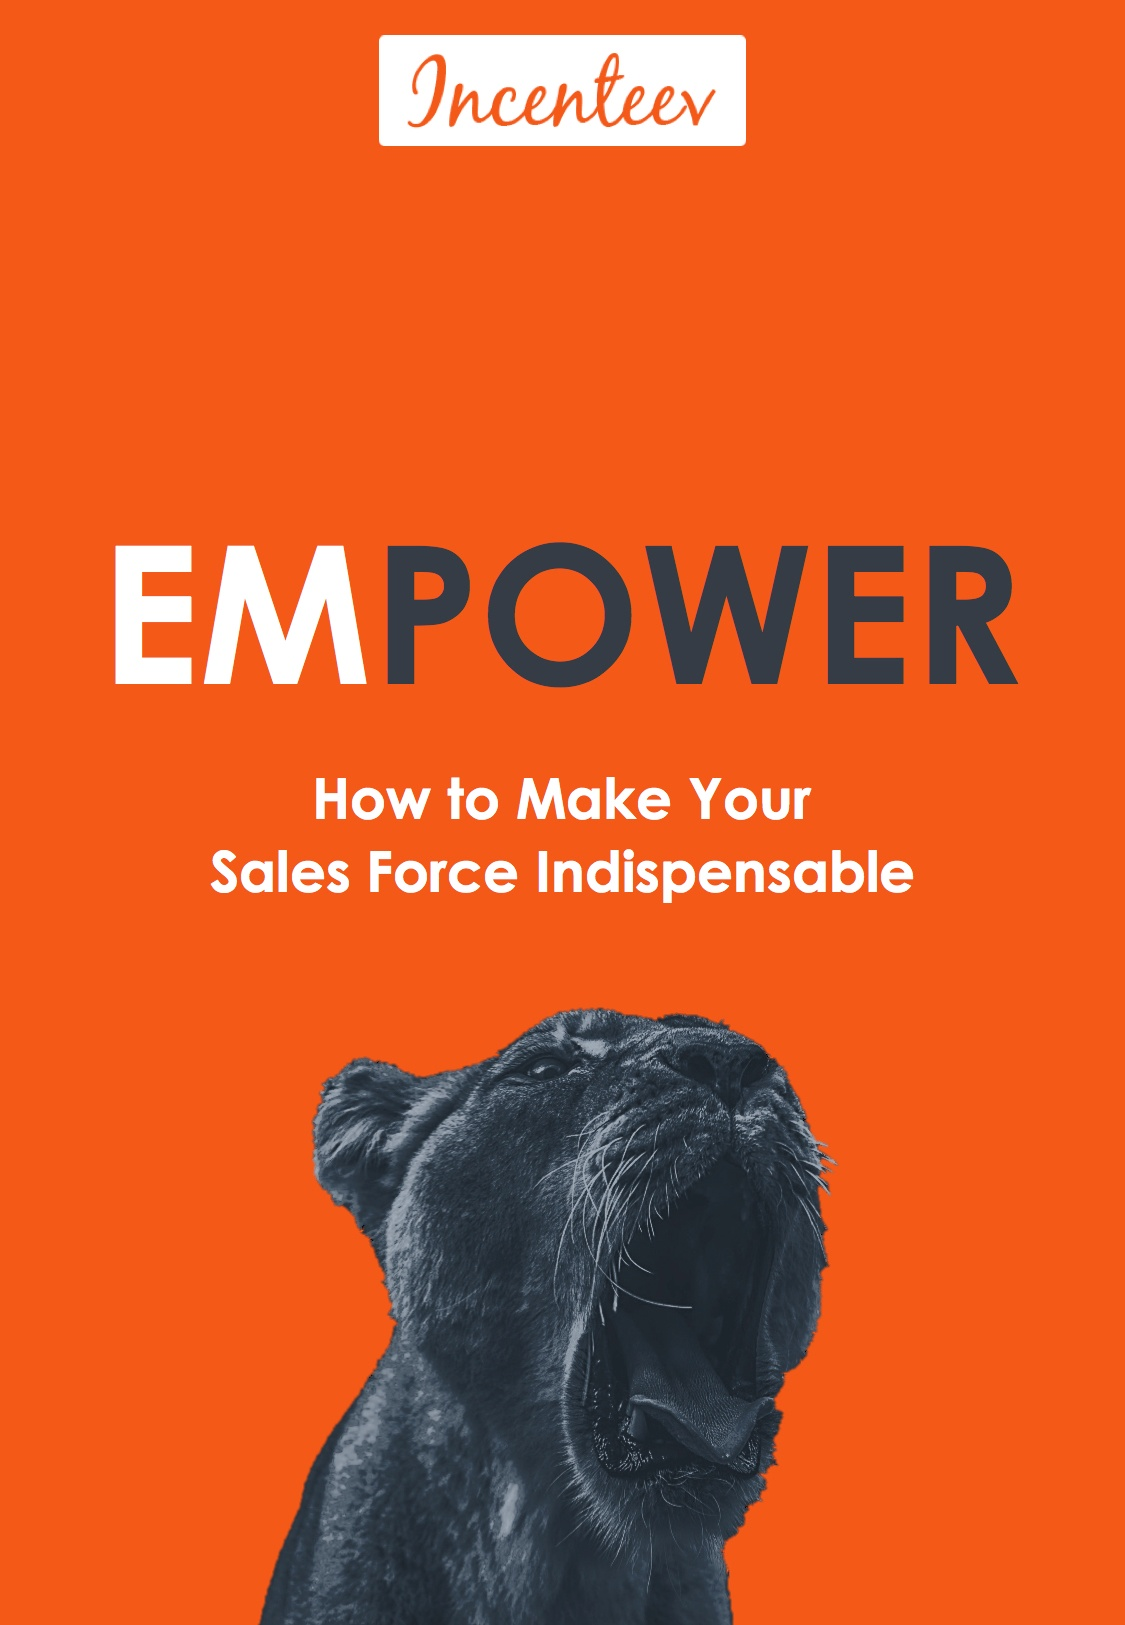 Cover_EMPOWER_Incenteev_eBook (new).jpeg